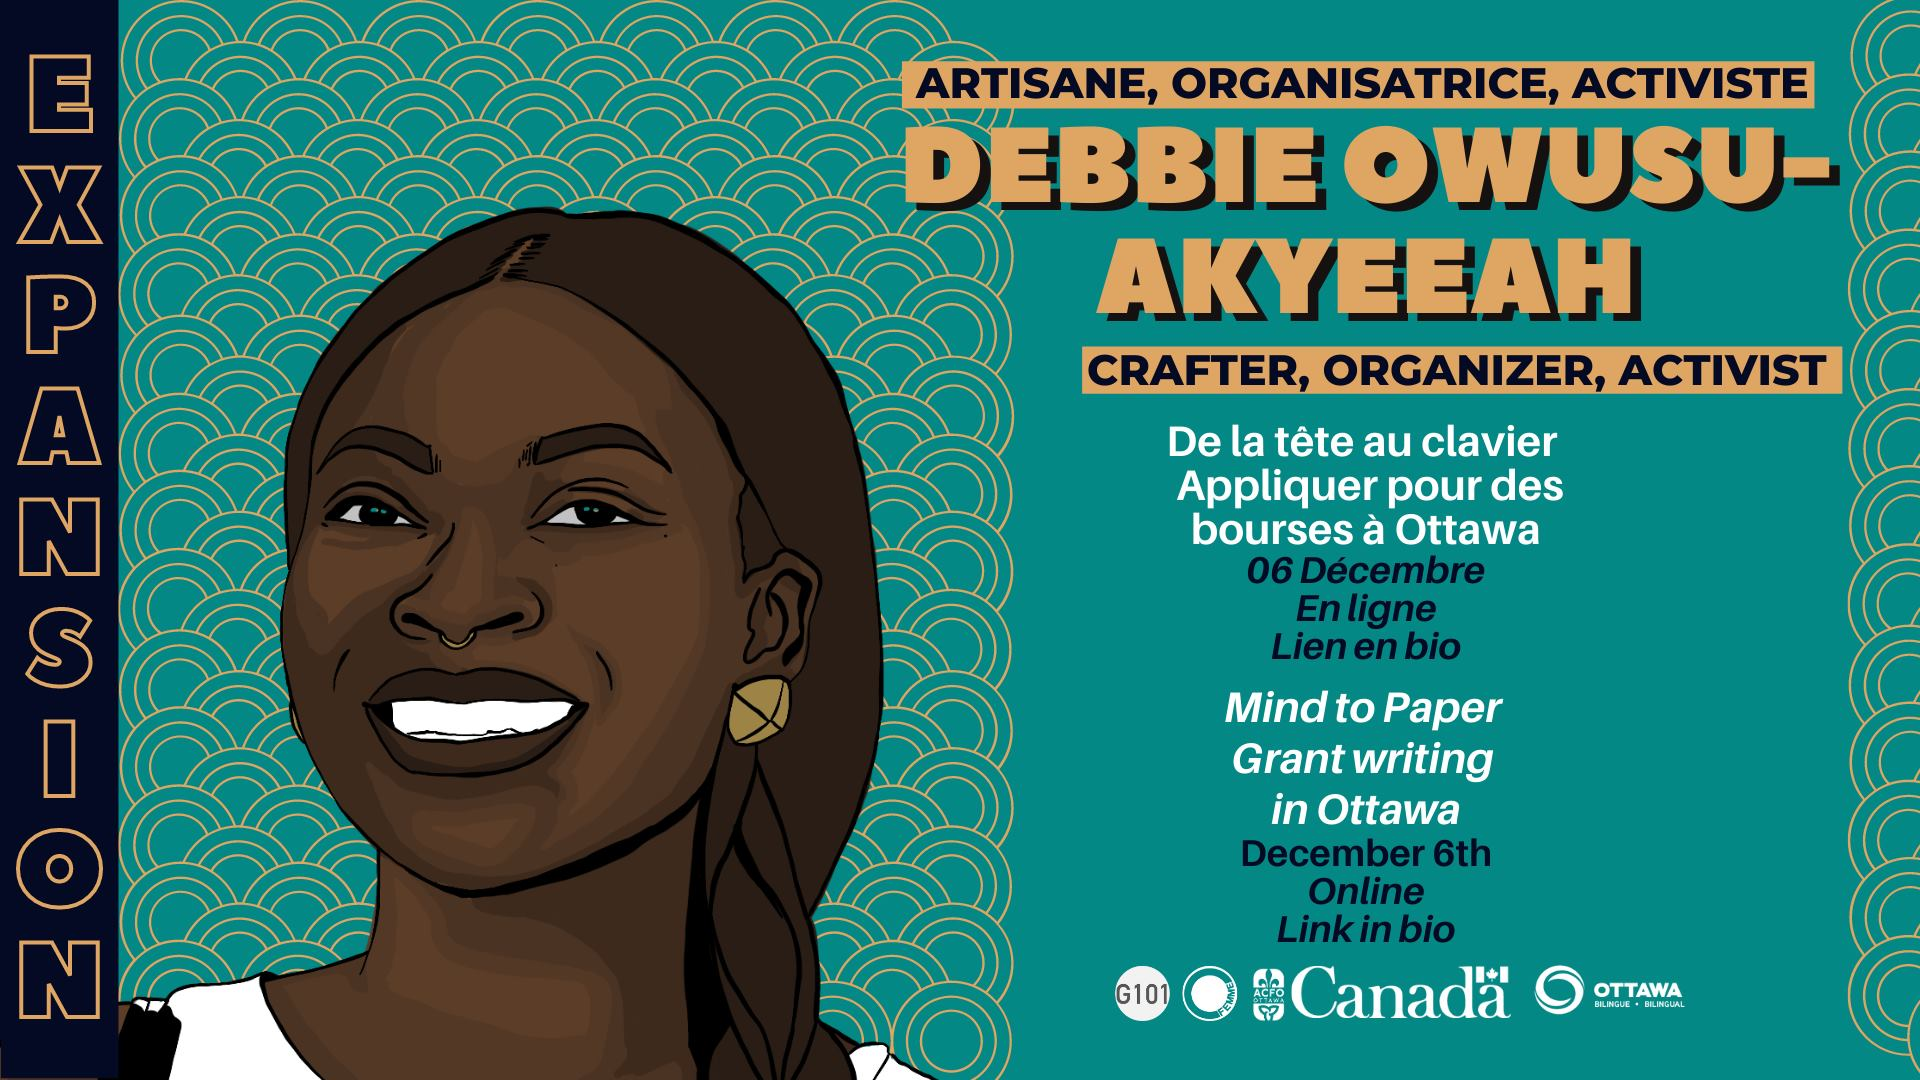 A banner with a teal background featuring a vector illustration of Debbie Owusu-Akyeeah.  Debbie is a Black woman and she is drawn smiling with her hair in a side braid. The text gives the details of the workshop in English and French.